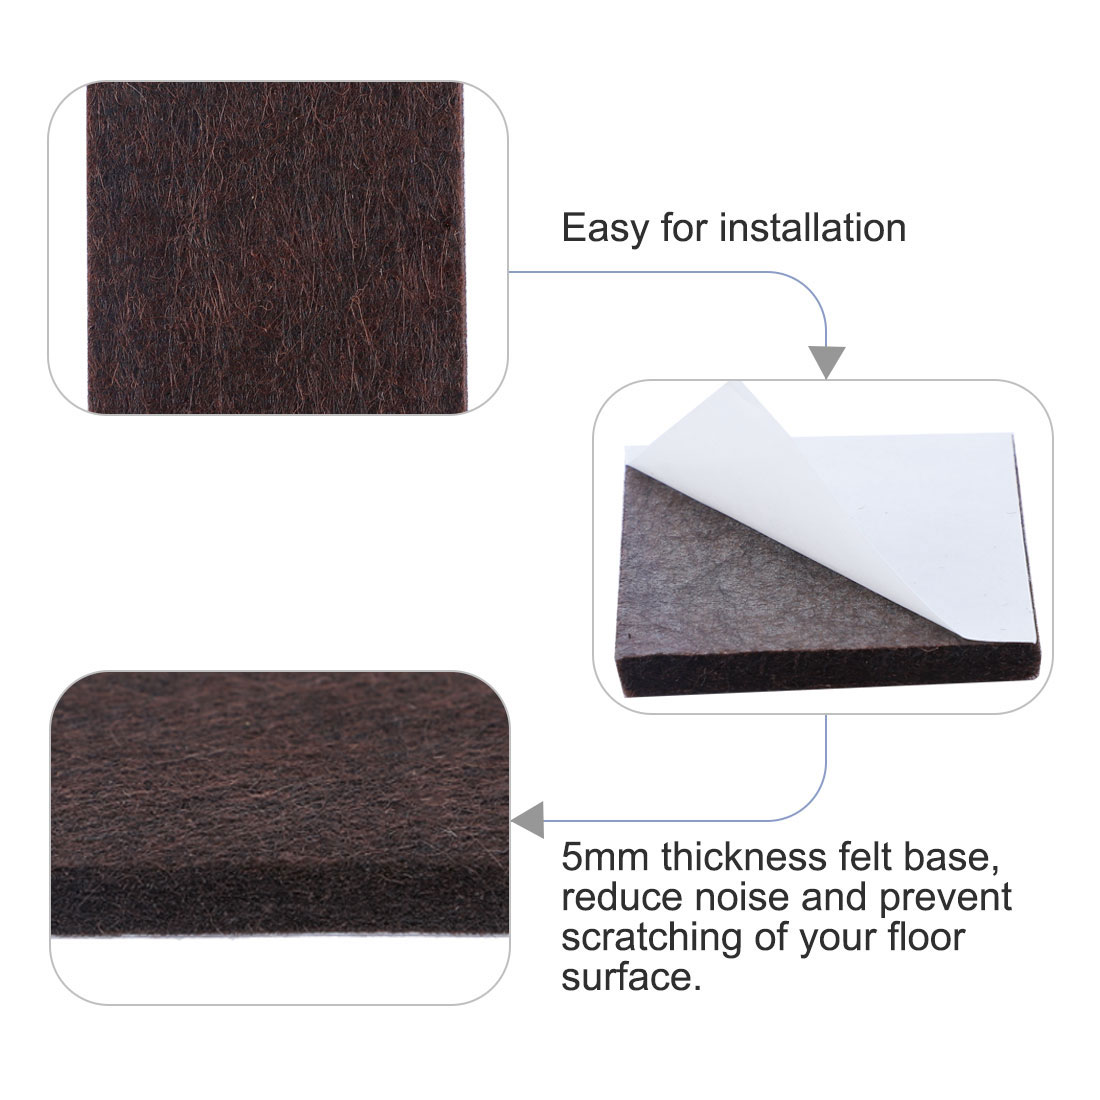 "Felt Furniture Pads Square 7/8"" Self Adhesive Anti-scratch Floor Protector 70pcs - image 2 de 7"